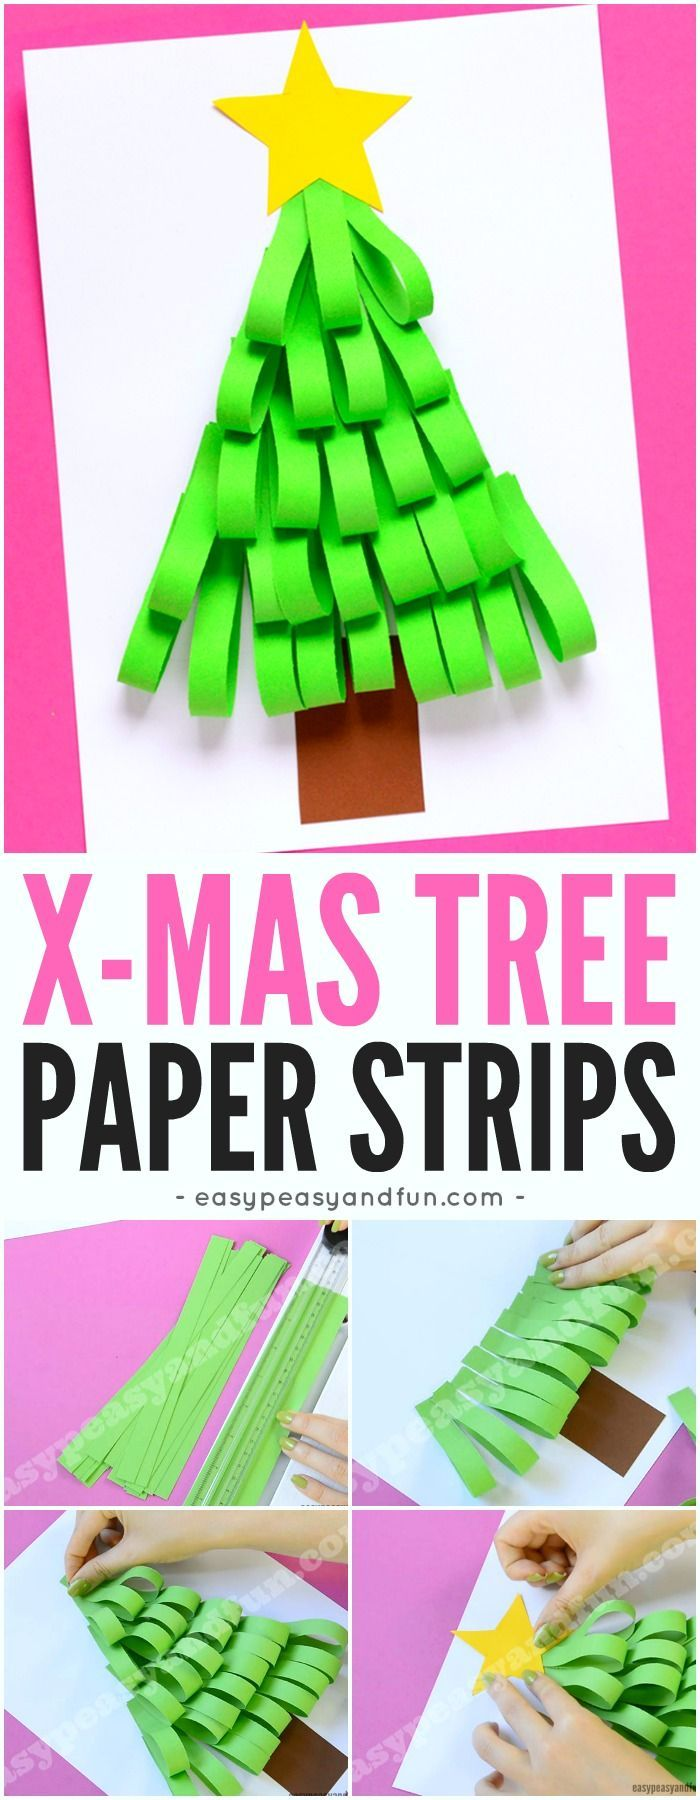 Paper Strips Christmas Tree Craft for Kids. A fun and simple Christmas craft for kids.